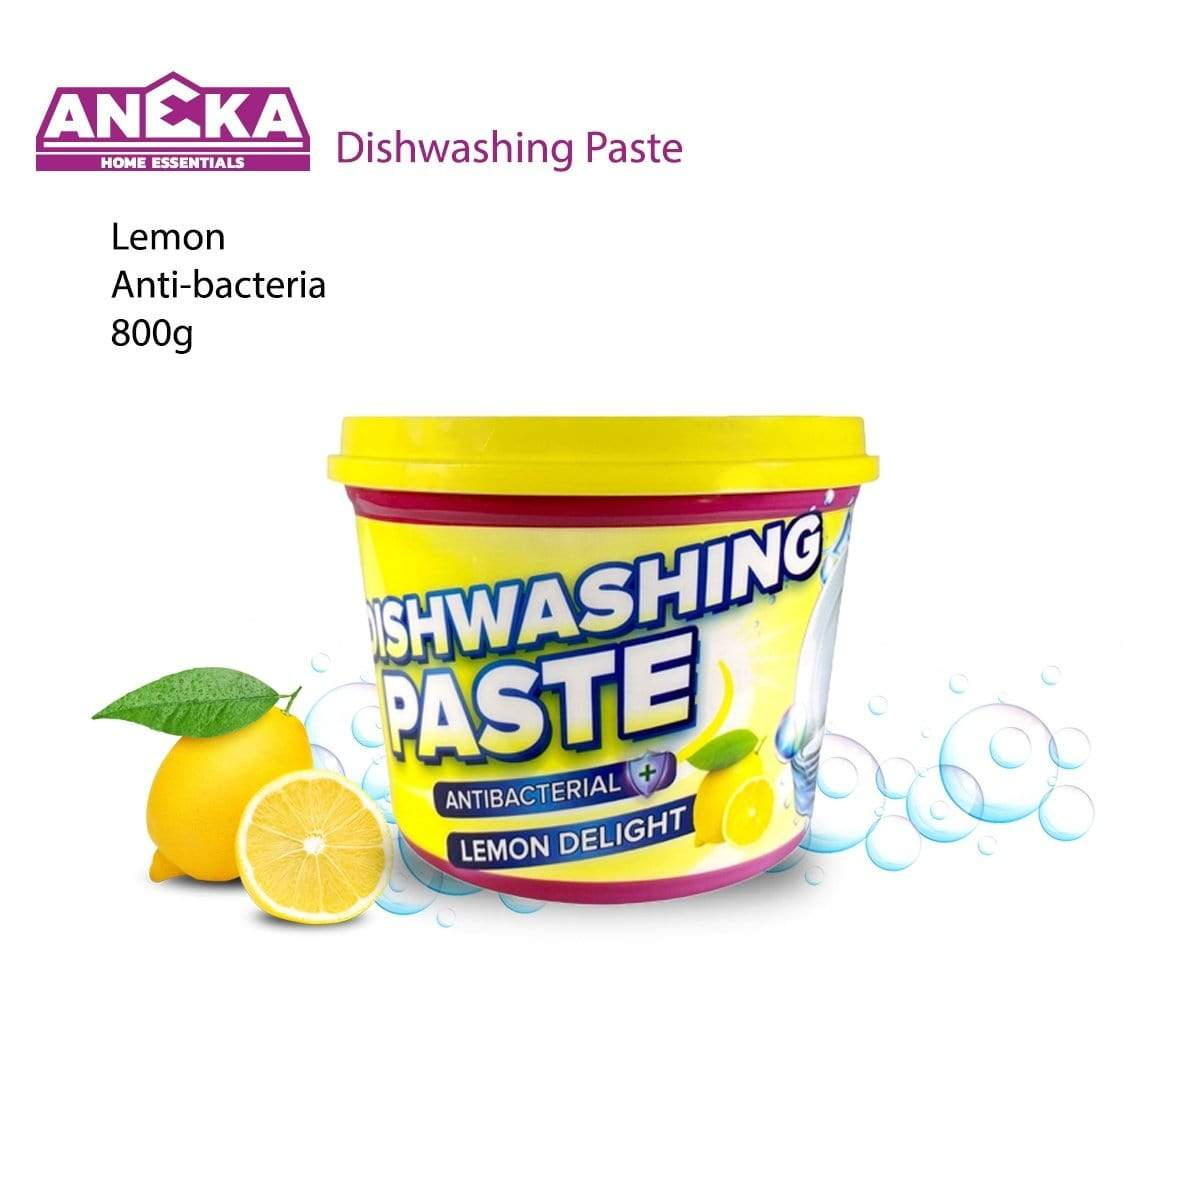 Antibacterial Dishwashing Paste 800g Lemon